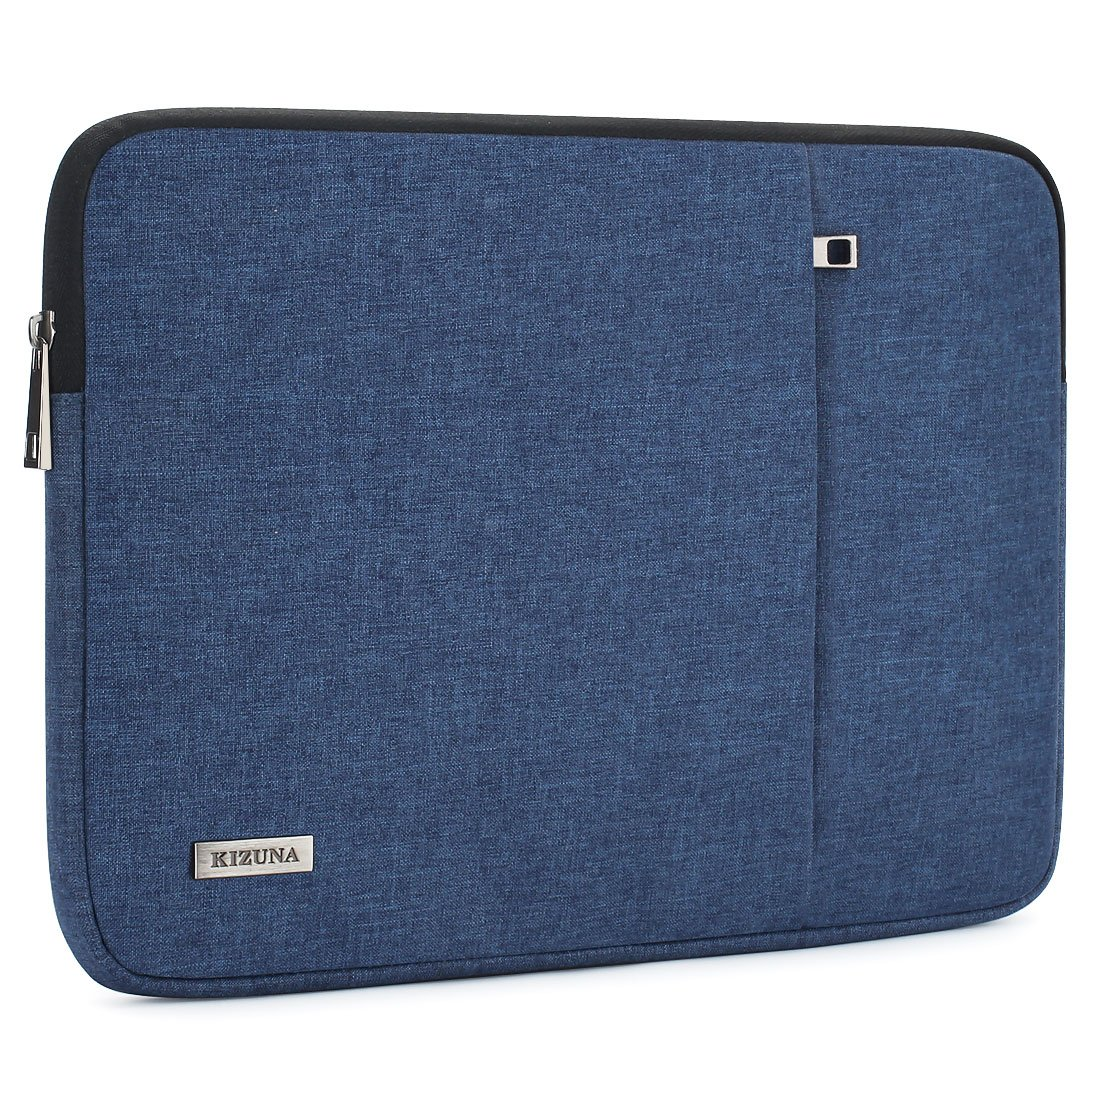 """KIZUNA 10 inch Laptop Sleeve case Water Resistant Tablet Handle Bag for 10.5 inch iPad Pro / 2017 New 9.7 inch iPad / 9.7 inch iPad Pro / 10.1"""" Lenovo Yoga Tab 3 Tablet / 10.1"""" Lenovo YOGA BOOK, Blue"""